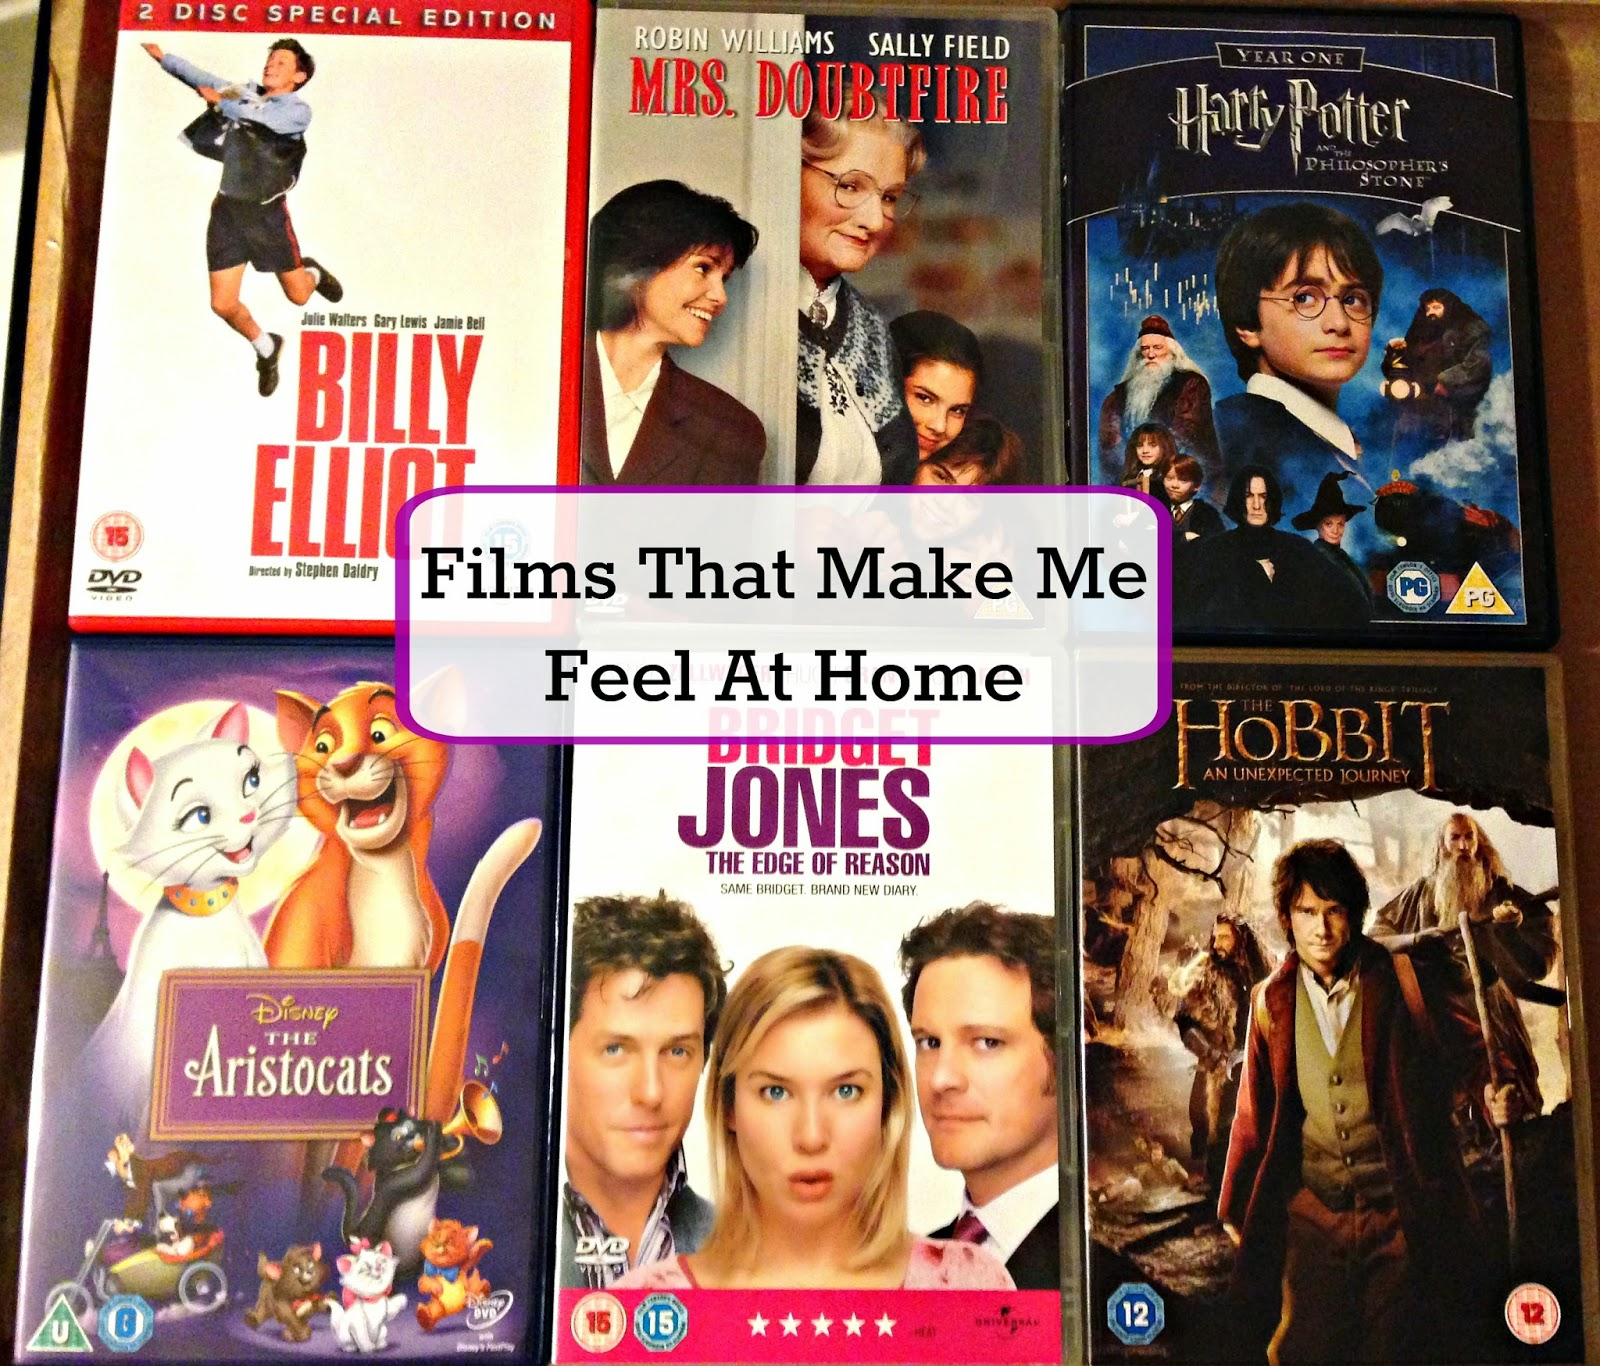 Films That Make Me Feel At Home